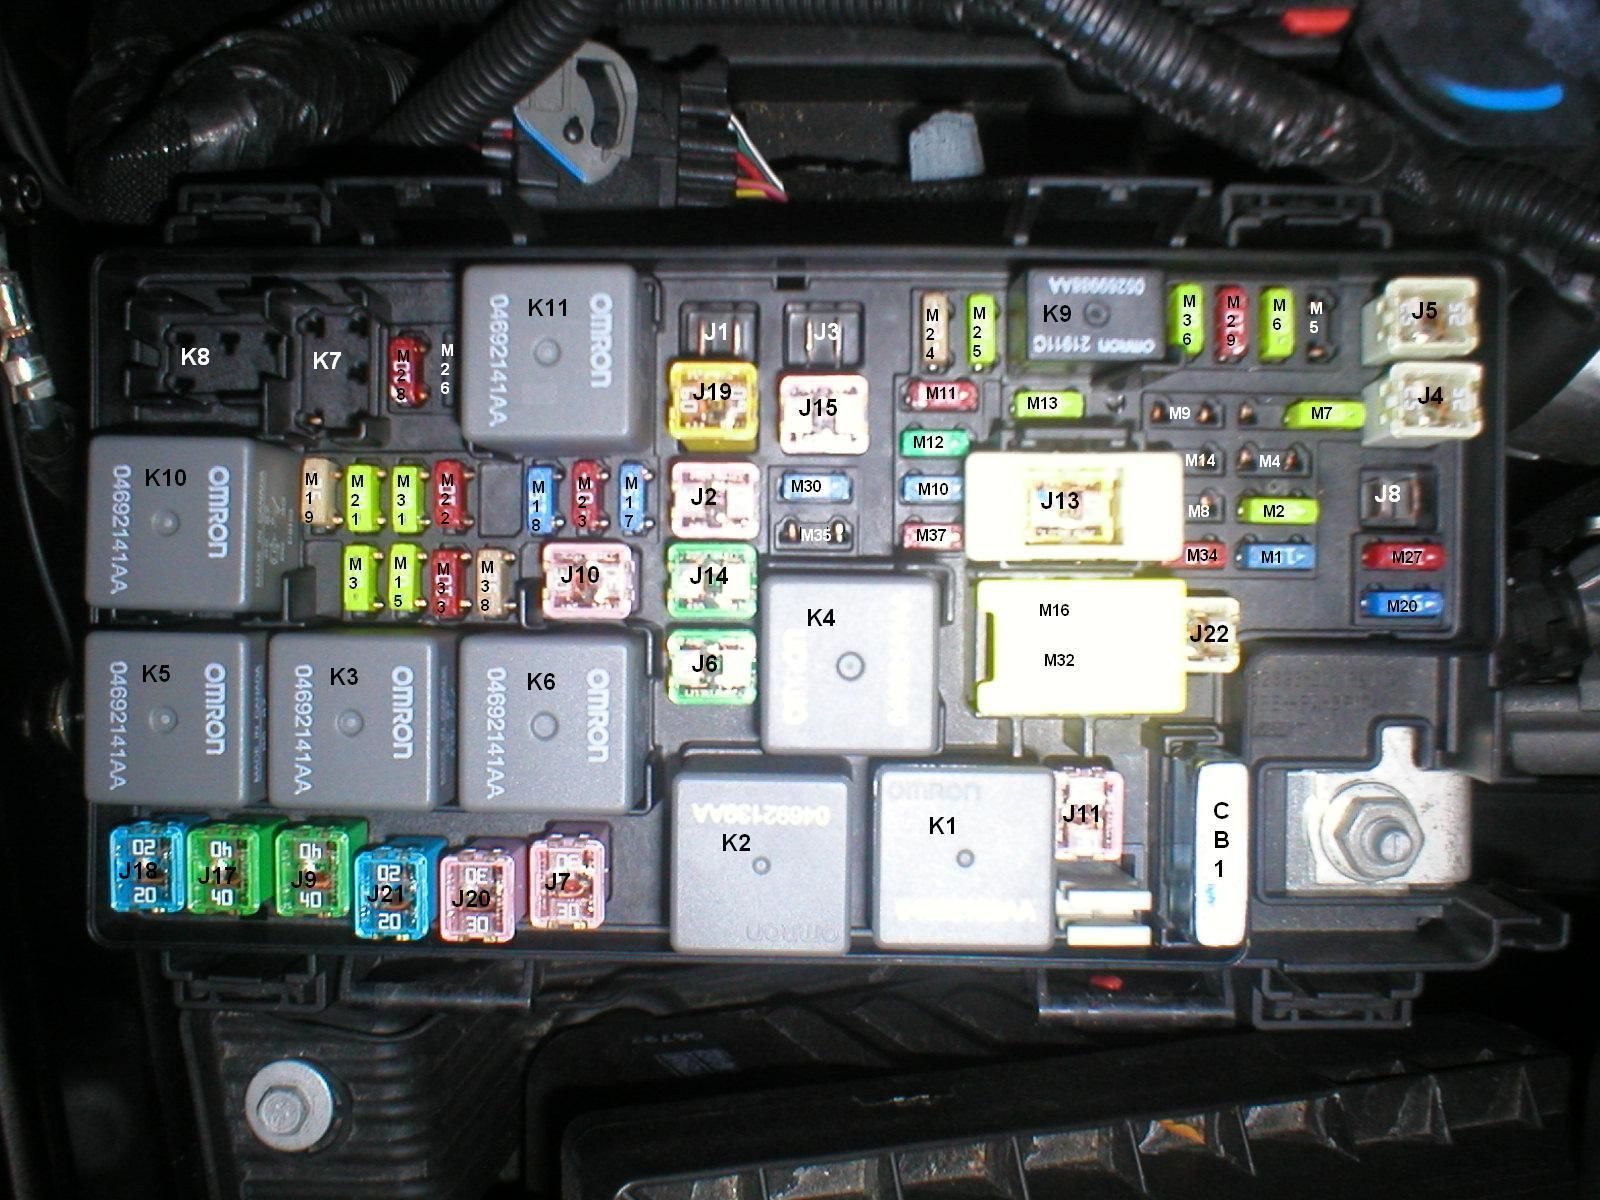 2011 Jeep Wrangler Fuse Box Manual Guide Wiring Diagram For 2012 Compass Library Rh 83 Codingcommunity De